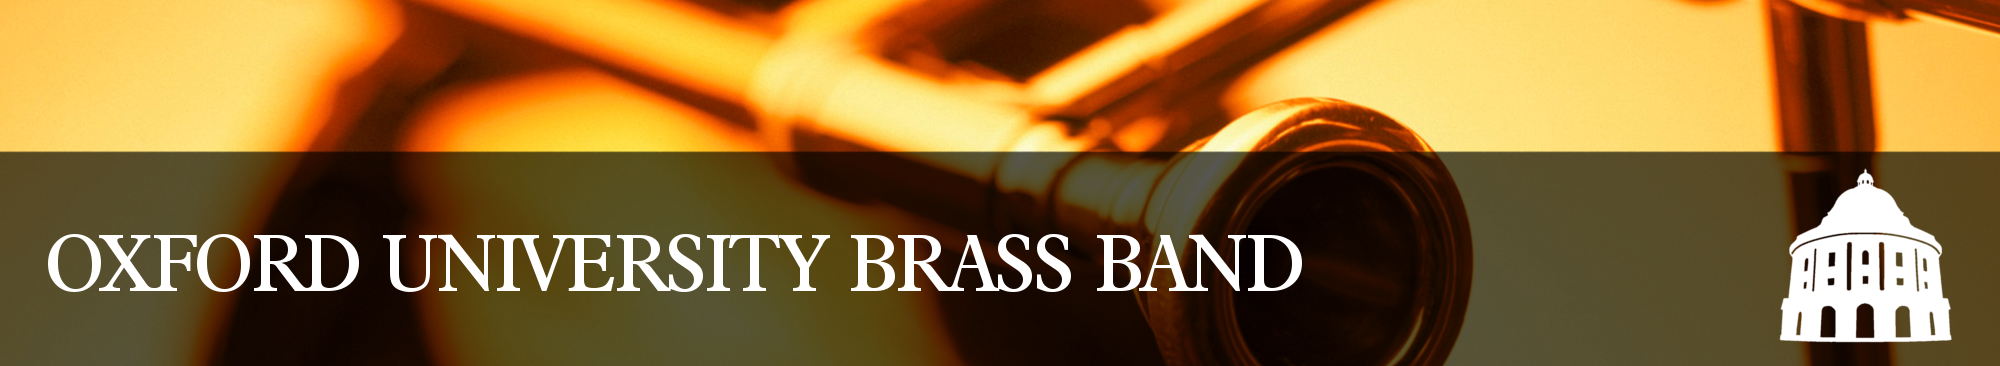 OUBB – Oxford University Brass Band